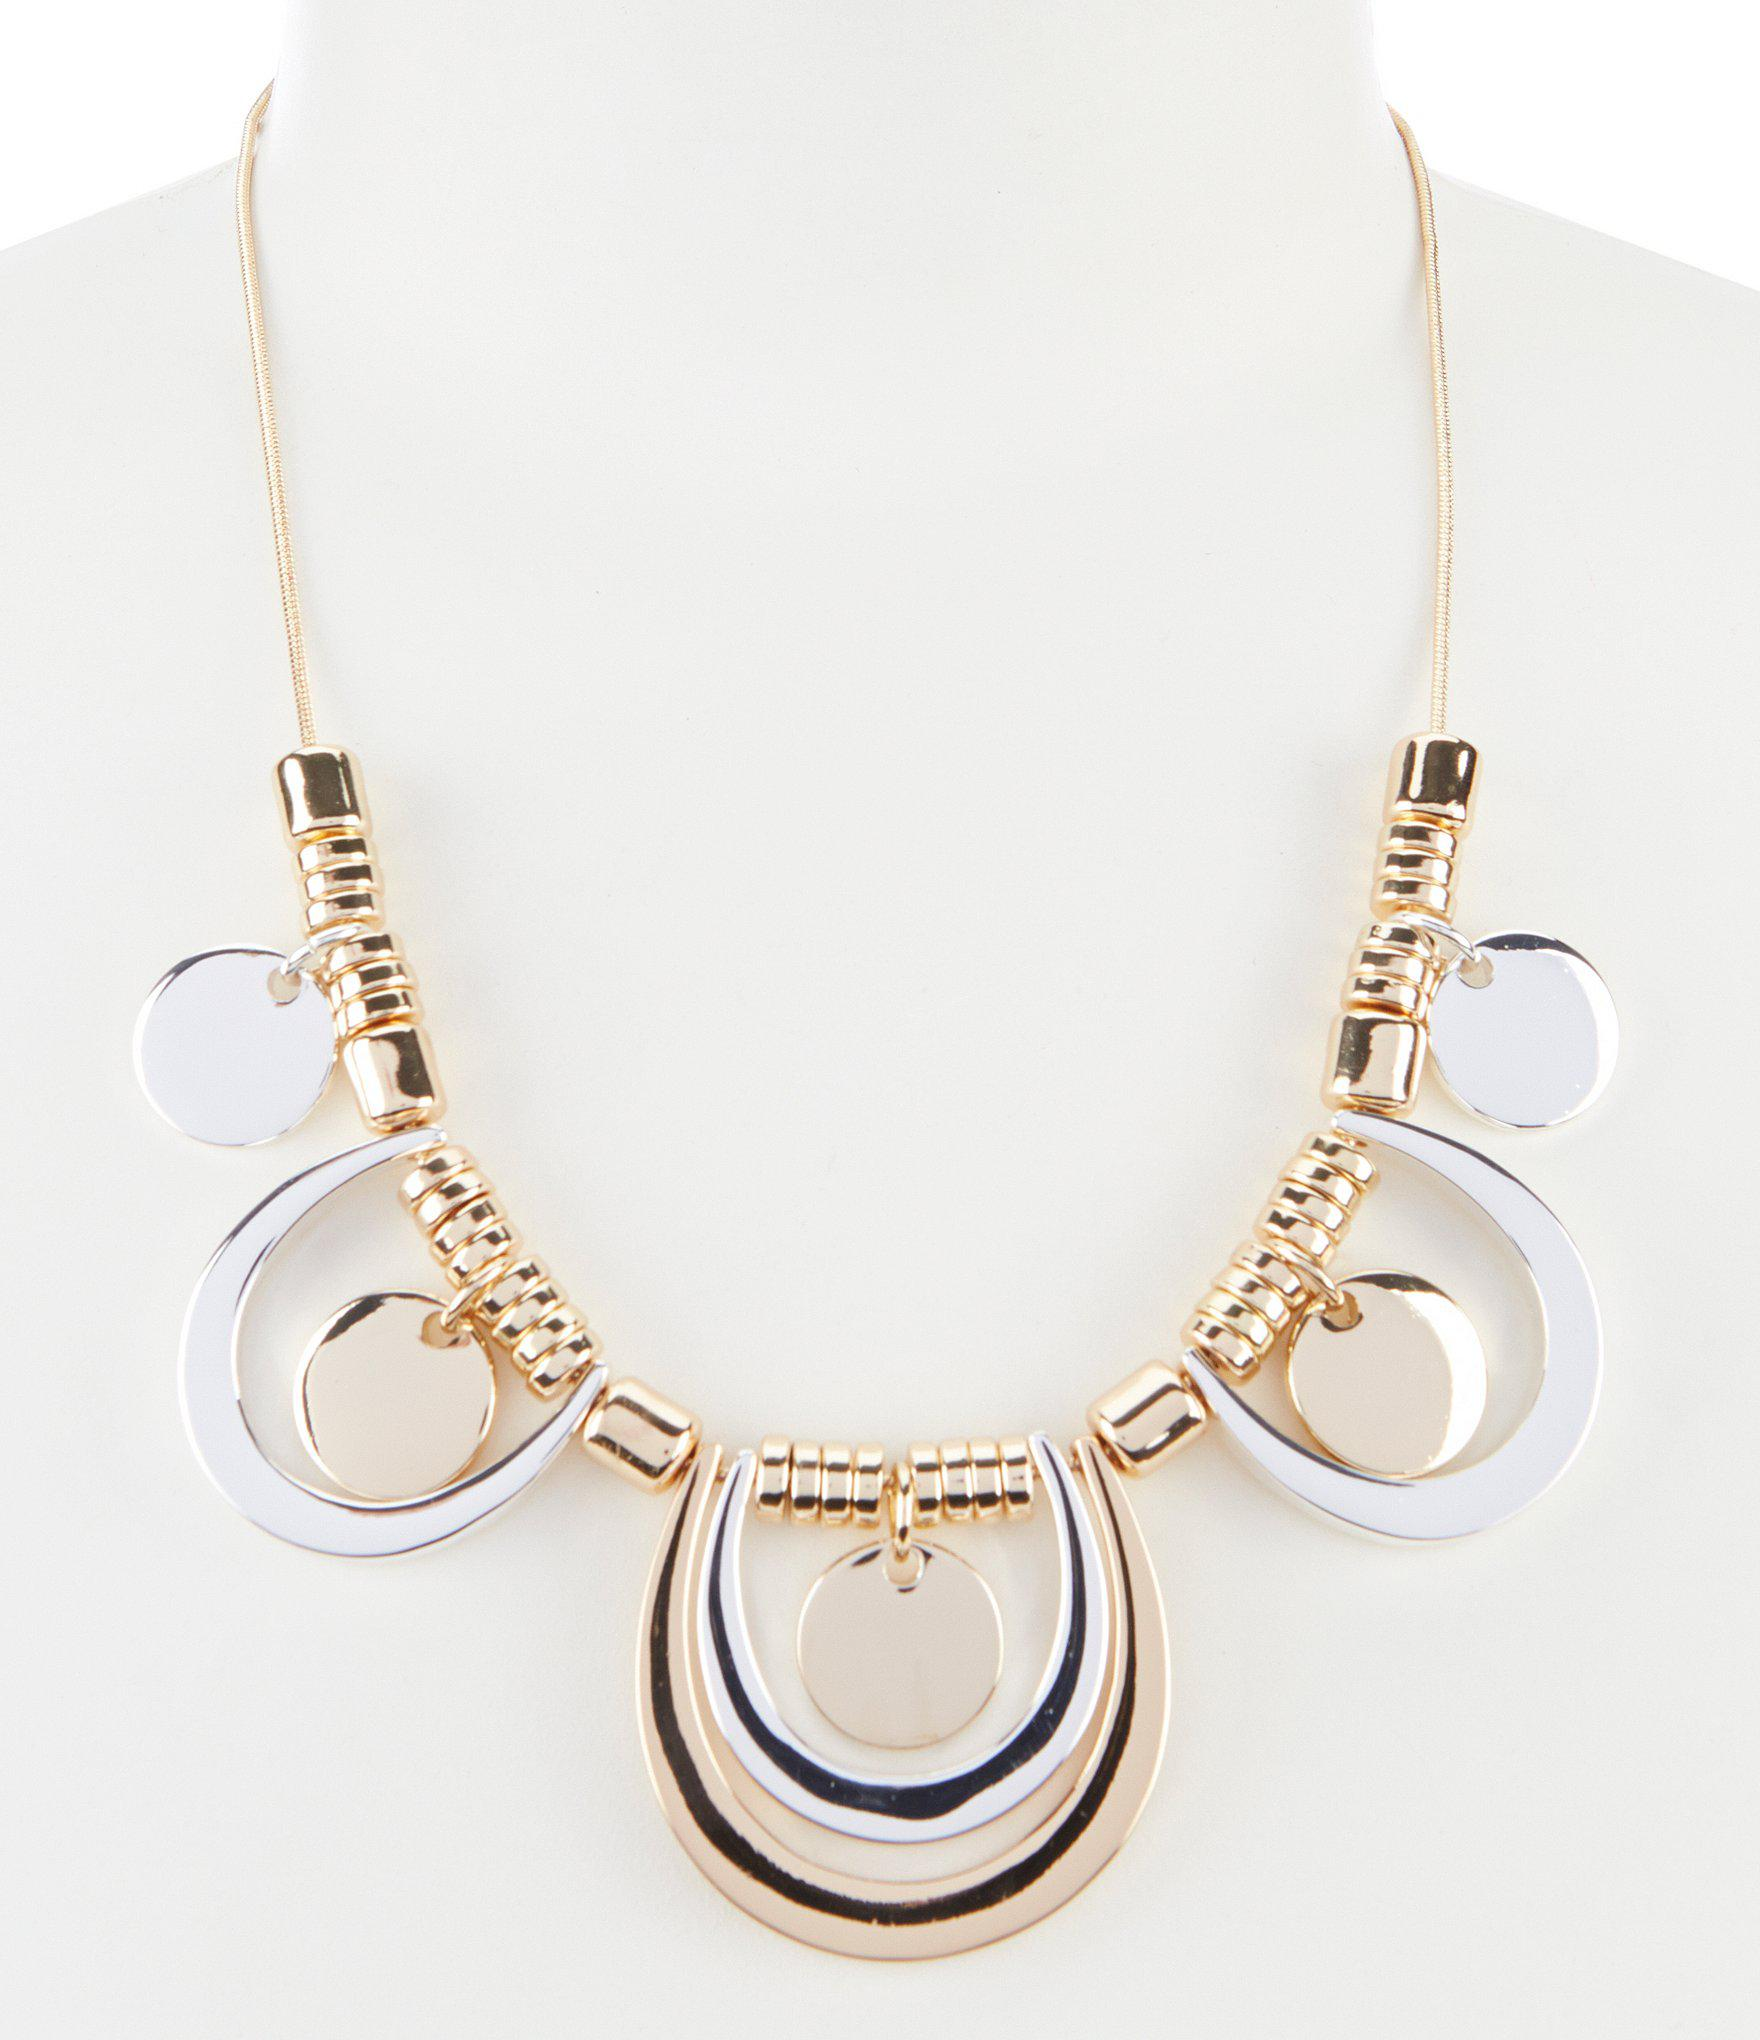 0bc26a39ae3f2 Lyst - Dillard's Two Tone Statement Necklace in Metallic